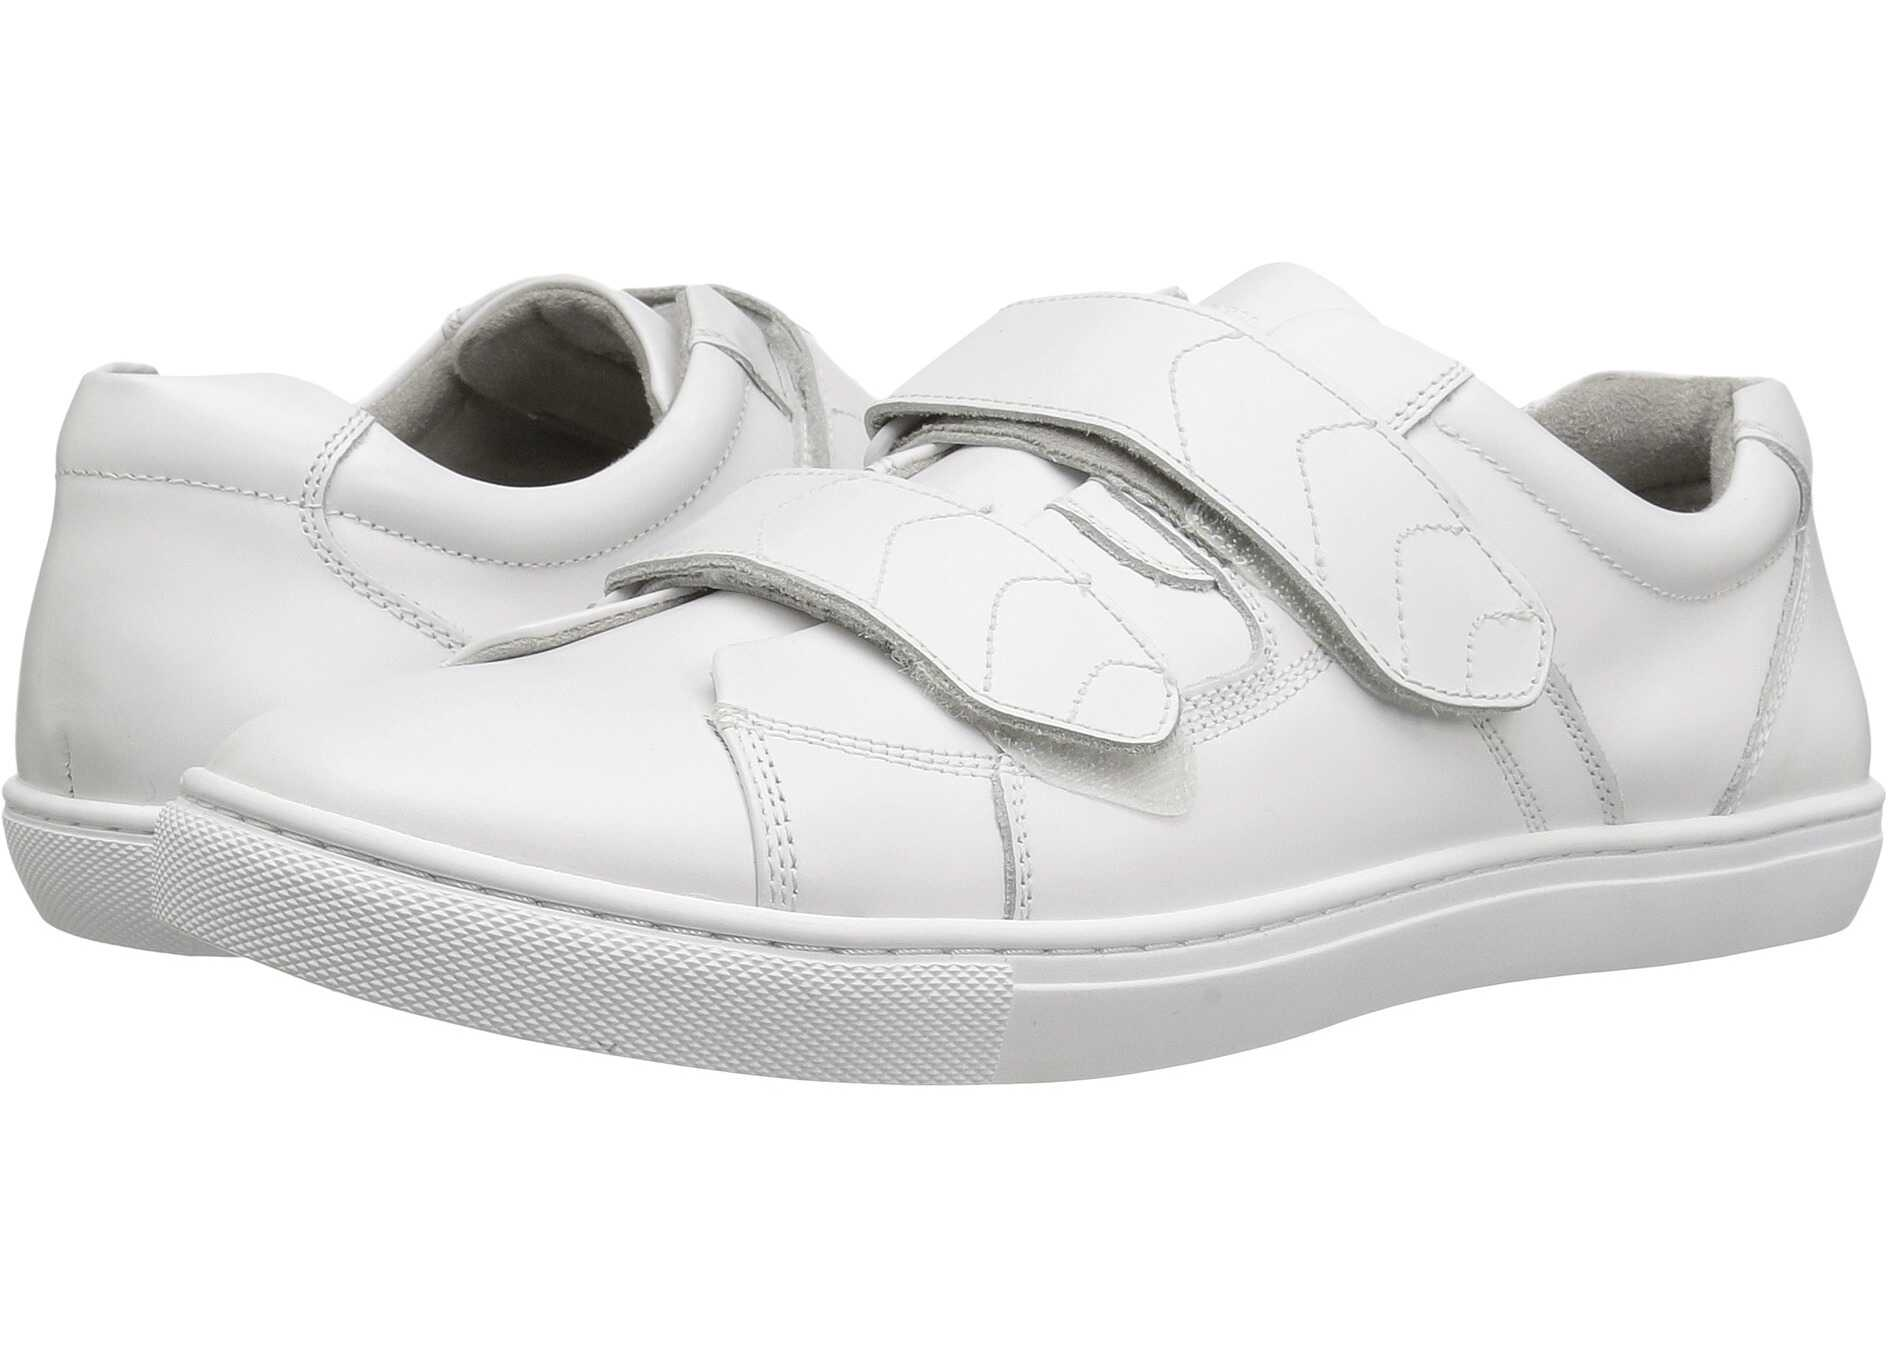 Kenneth Cole New York Design 102075 White